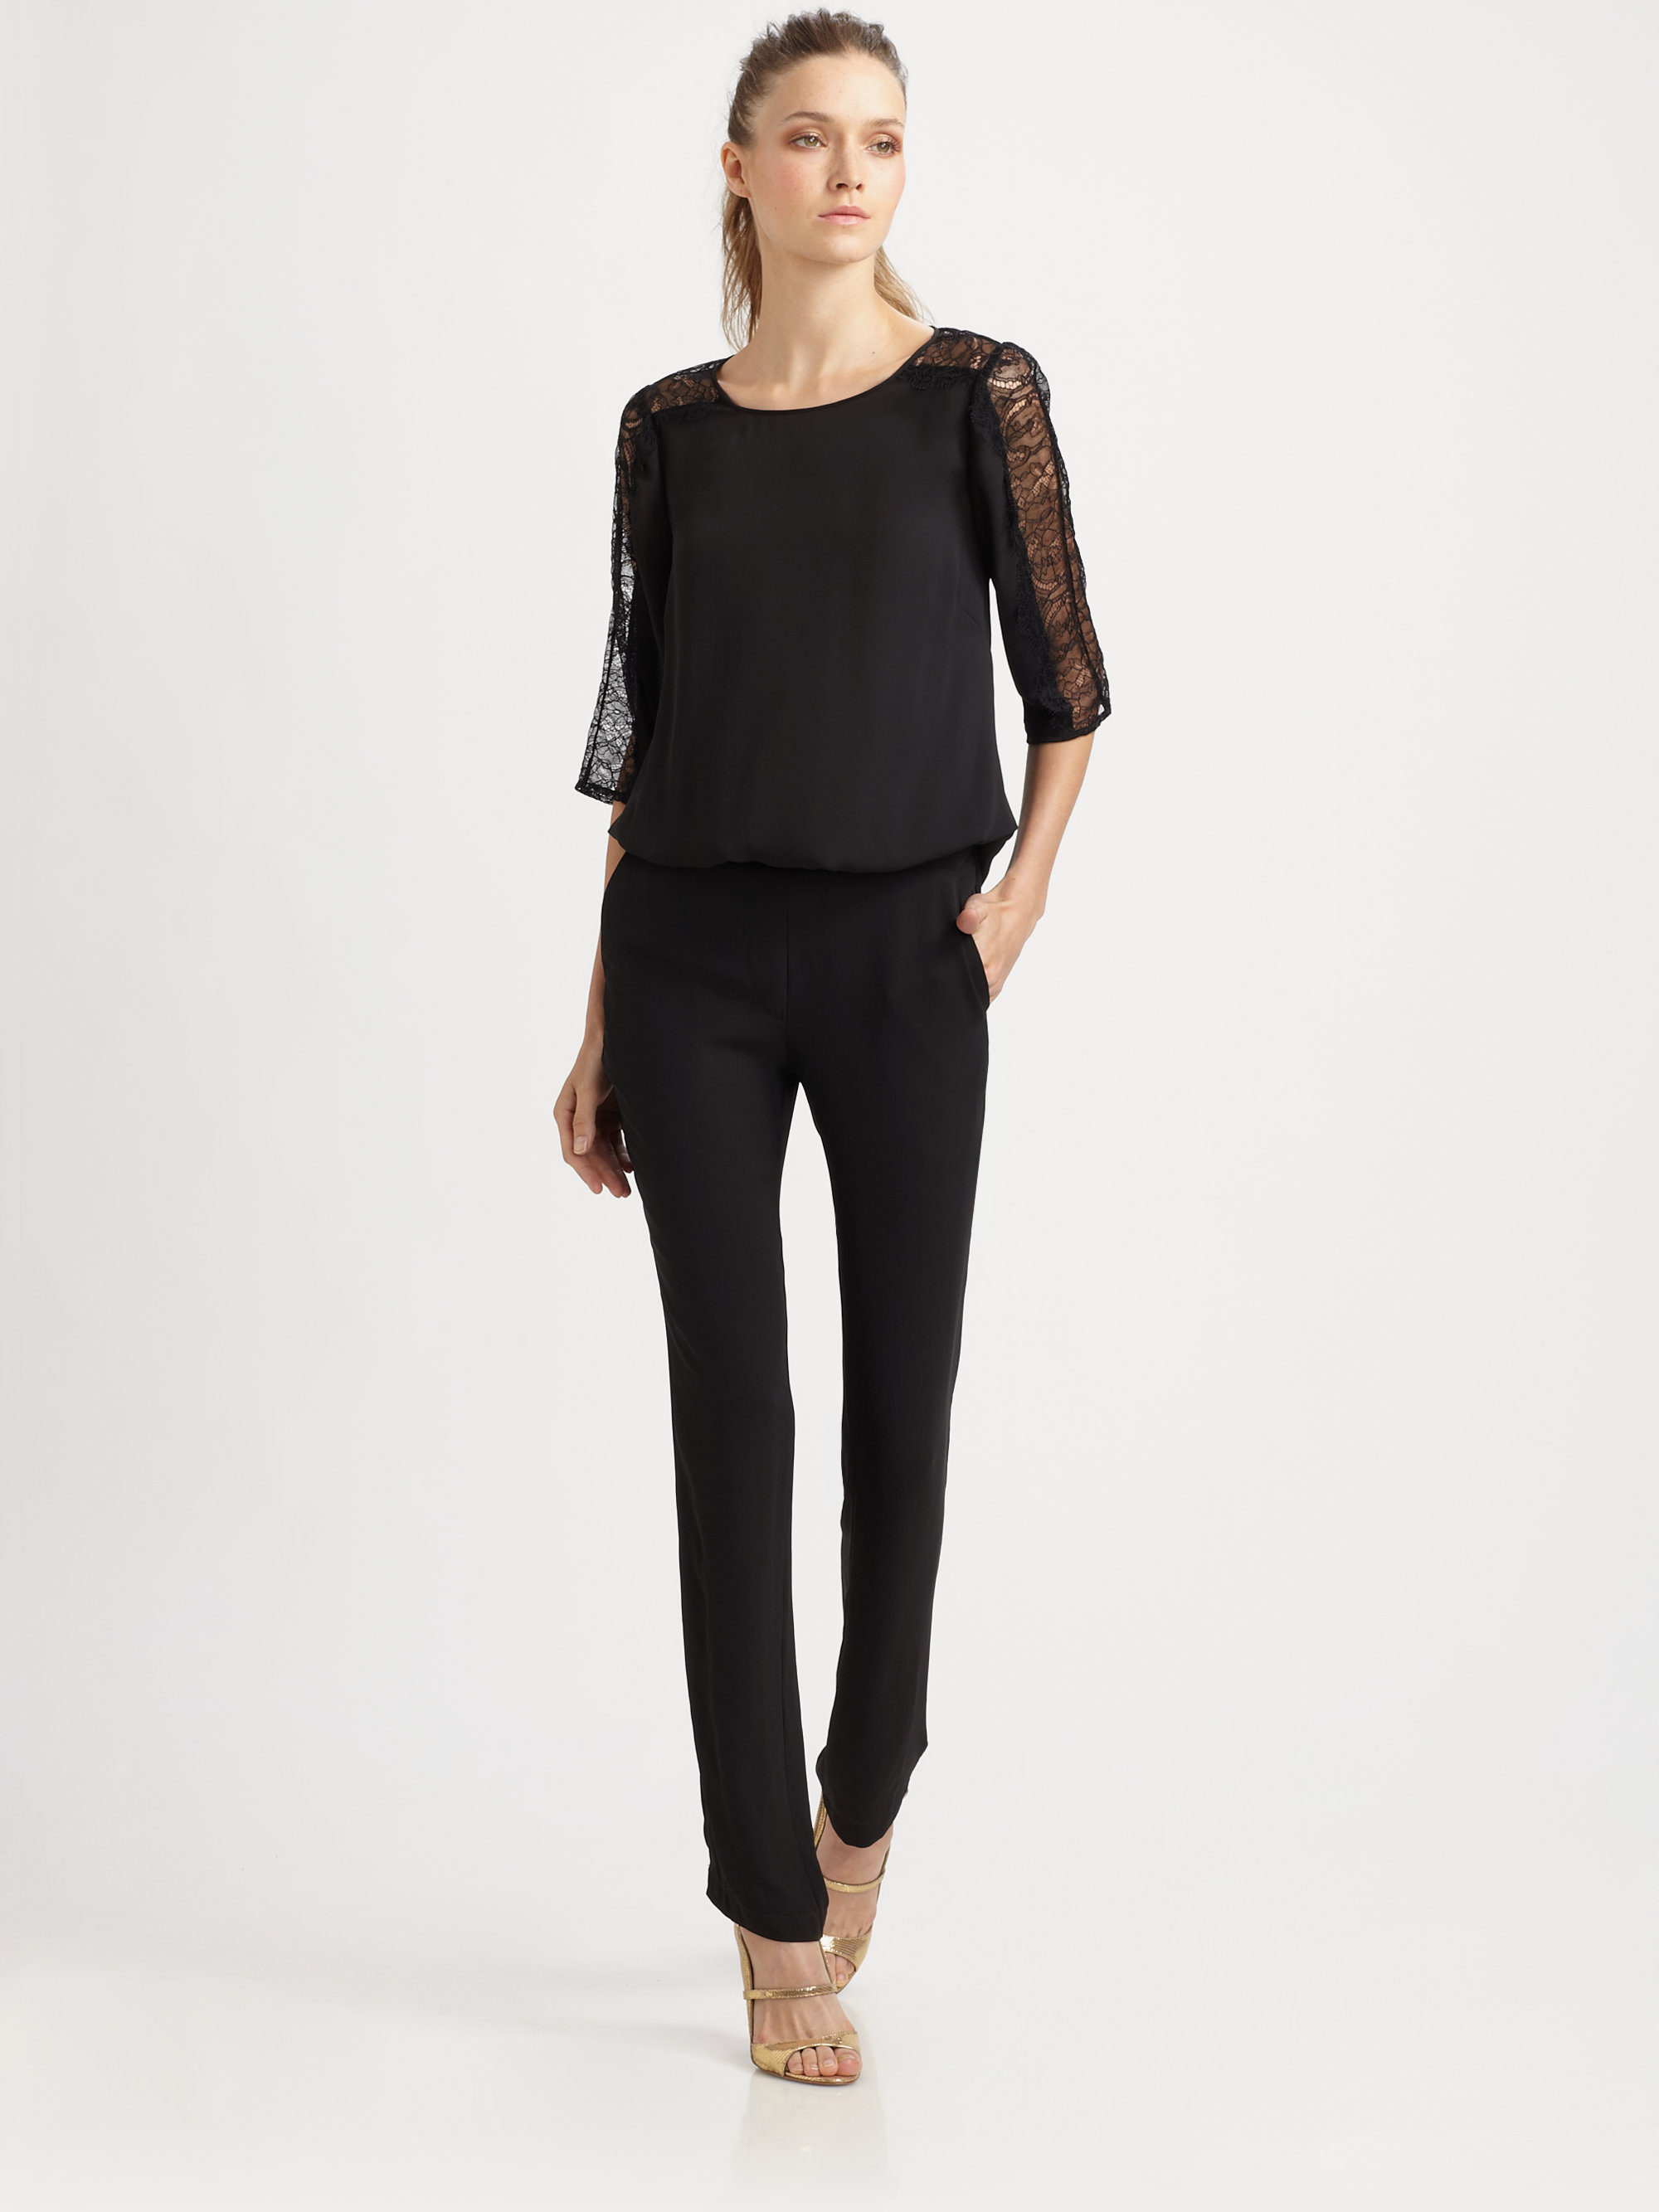 Find great deals on eBay for black long sleeve jumpsuit. Shop with confidence.